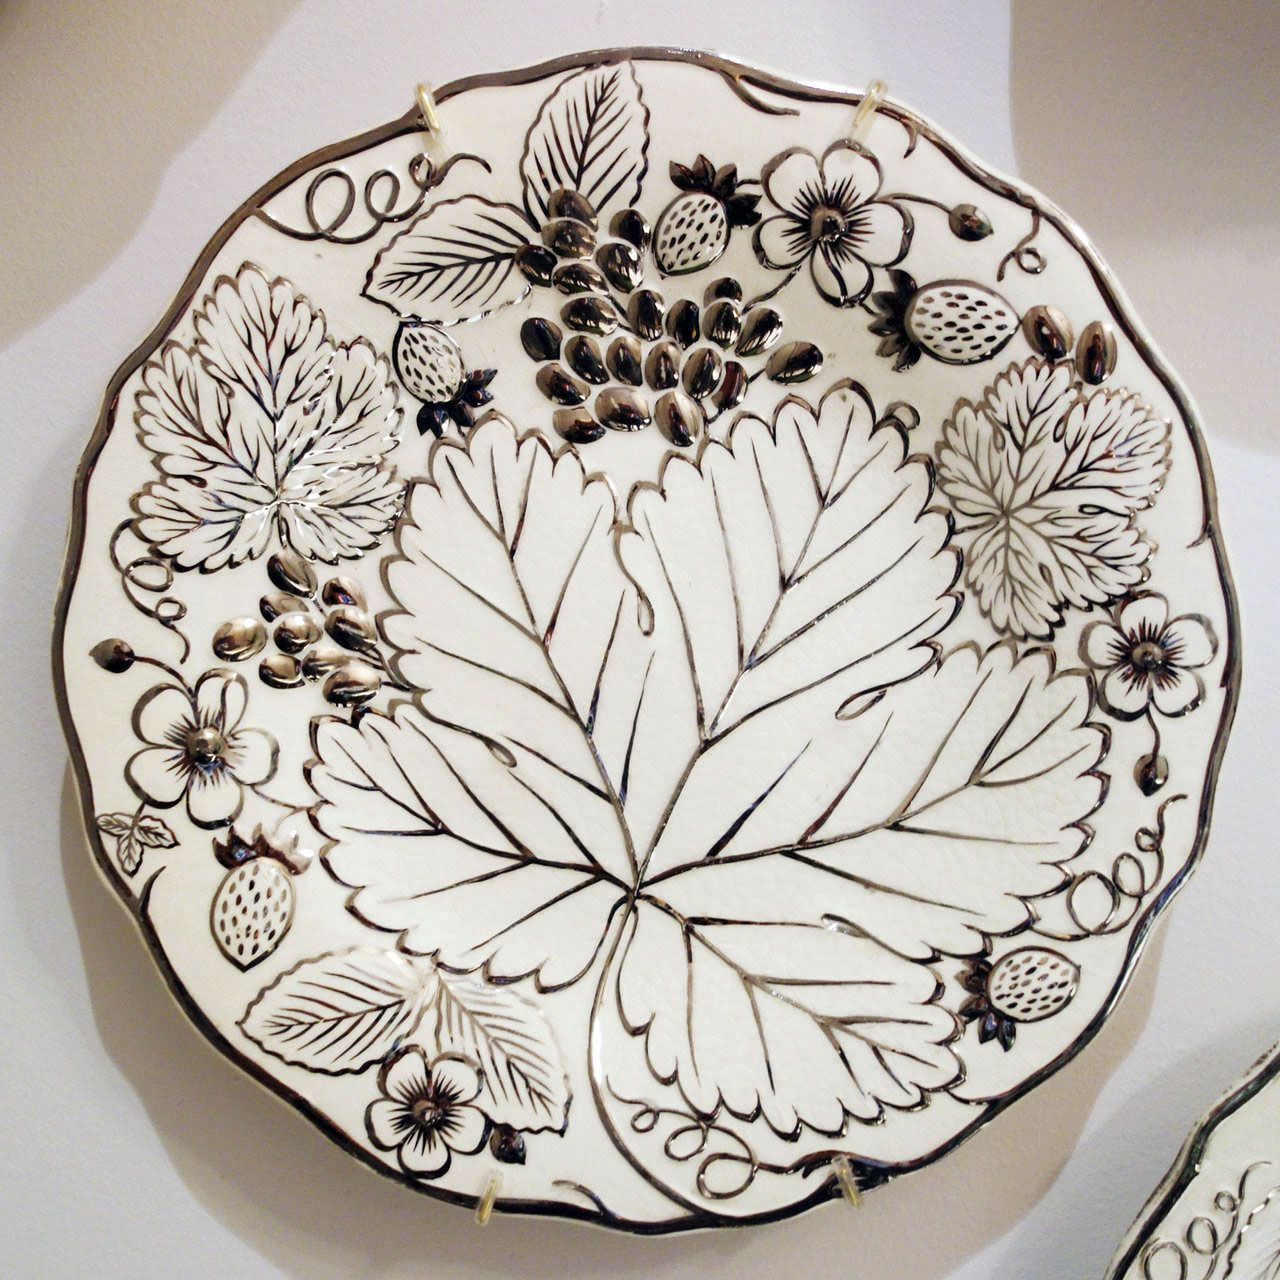 "<p>""I've collected lustreware for years.""</p><p><em>Wedgwood silver lustreware circa 1900, $3,600, <a href=""https://www.1stdibs.com/furniture/dining-entertaining/serving-pieces/wedgwood-silver-lustreware-partial-luncheon-service-circa-1900/id-f_2686312/"" target=""_blank"">1stdibs.com</a>.</em> </p>"